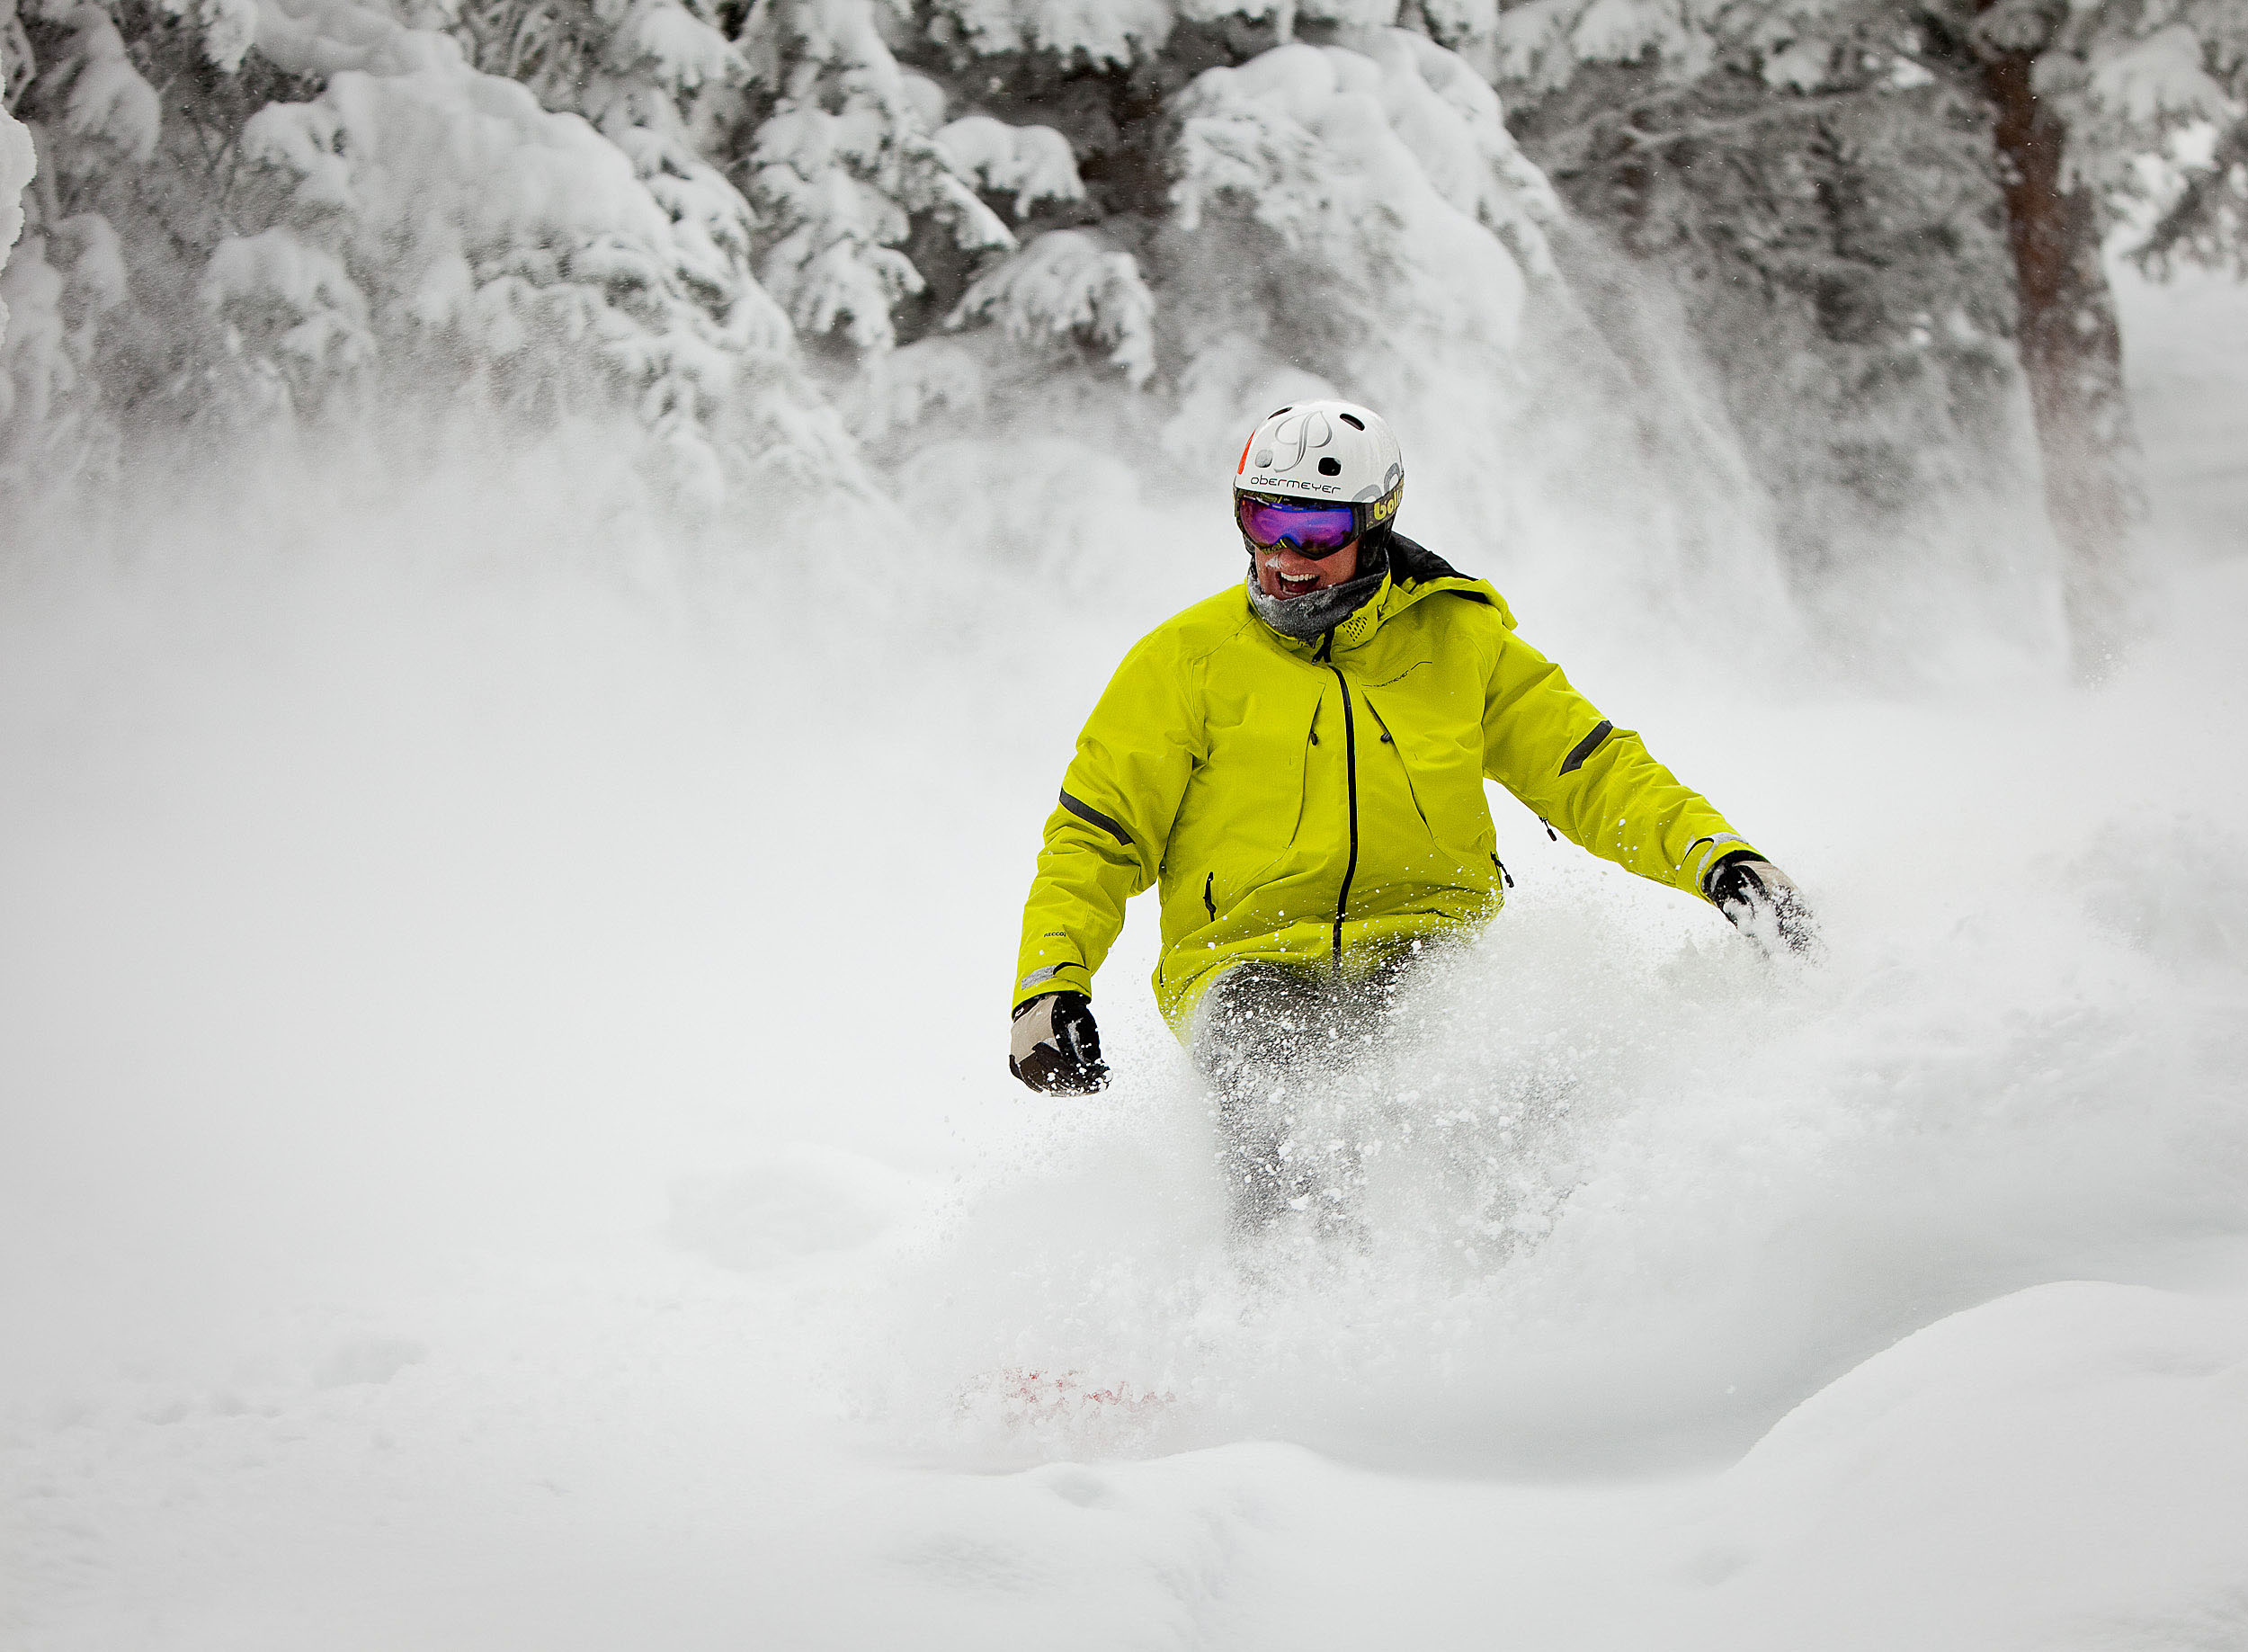 Colorado Ski Areas Extend Their 2014 Ski & Ride Season